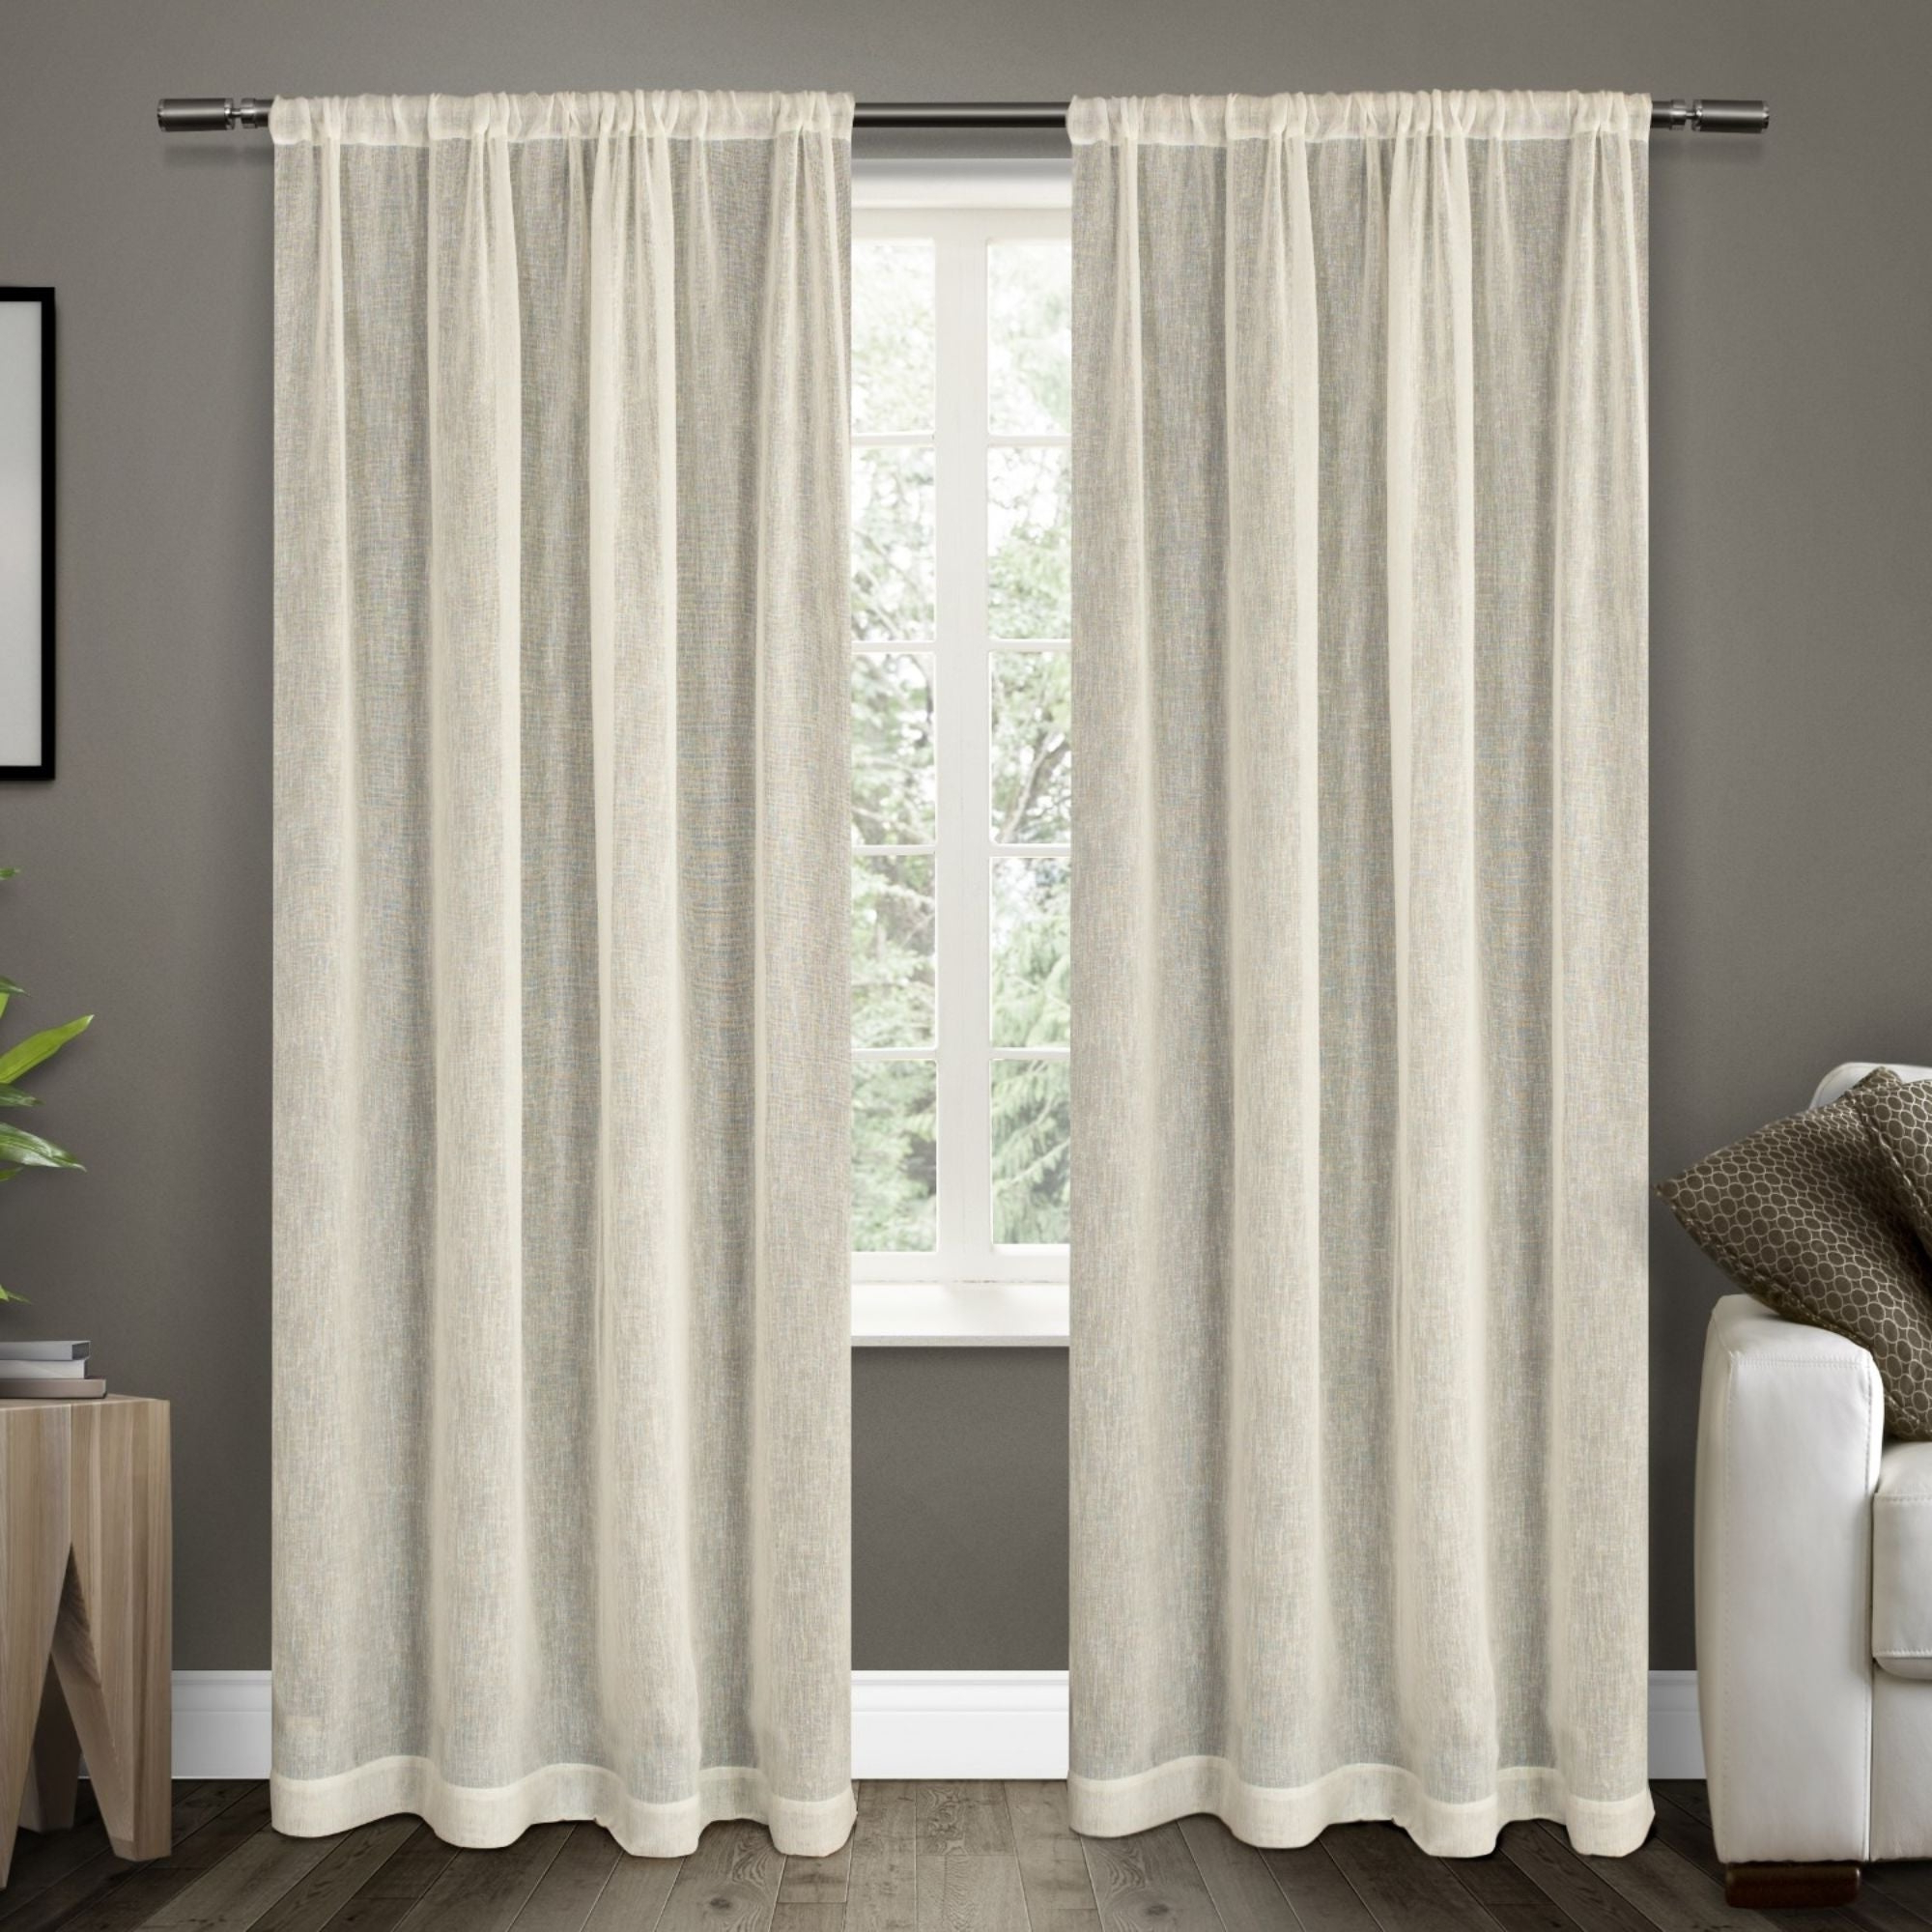 Most Recently Released Belgian Sheer Window Curtain Panel Pairs With Rod Pocket Within Ati Home Belgian Sheer Window Curtain Panel Pair With Rod Pocket (Gallery 1 of 20)